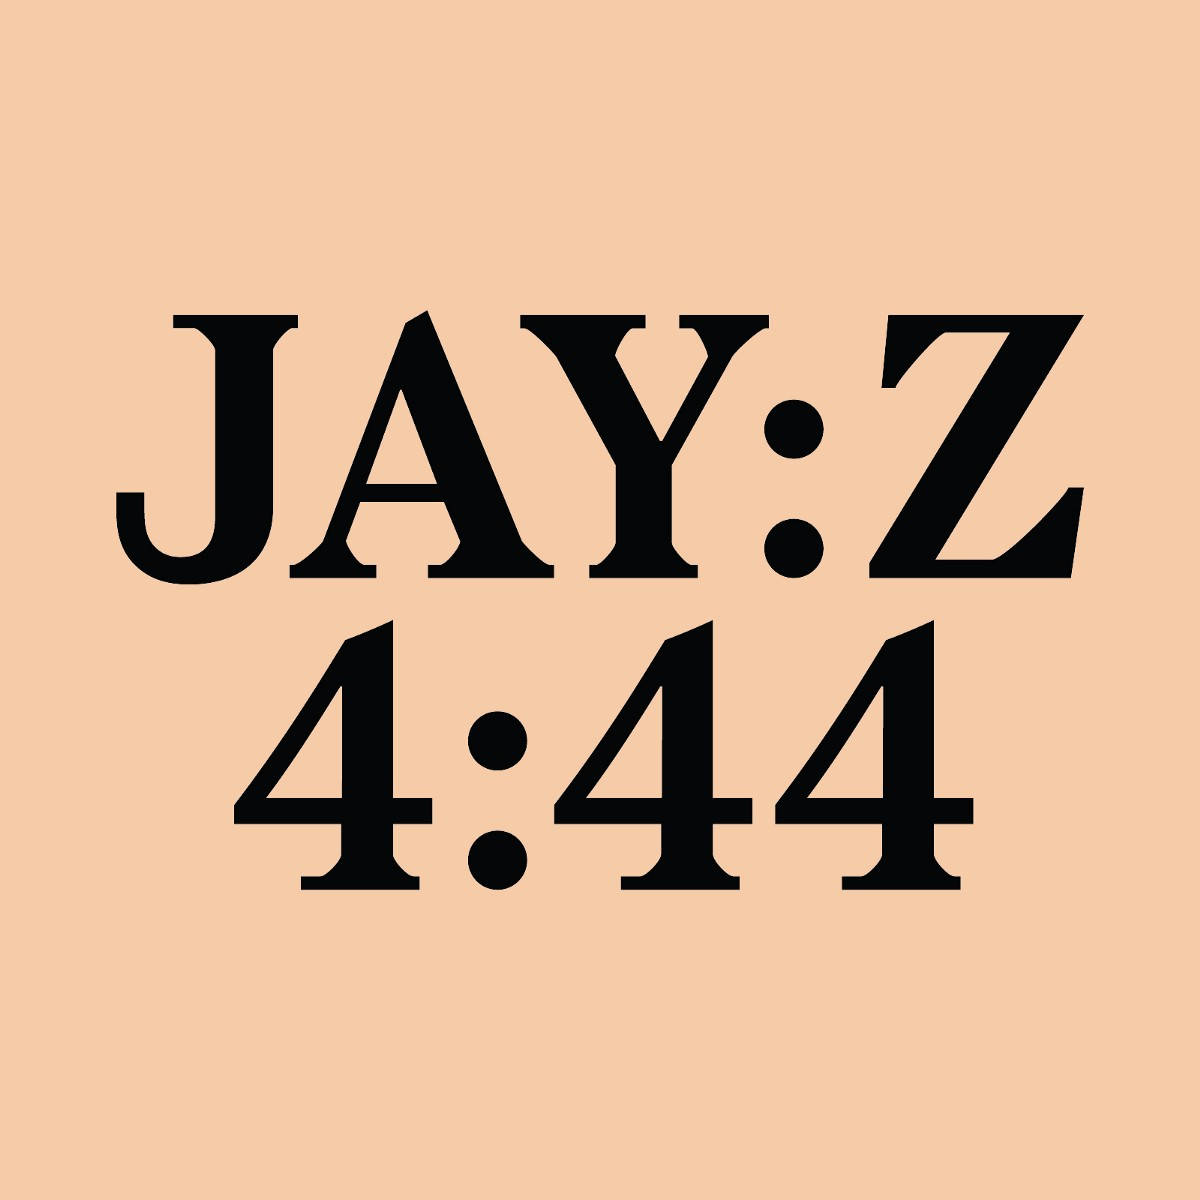 You know what time it is festival peak b its the second consecutive jay z project released from rarefied air leveraging corporate sponsorship and relationships to market a project from the malvernweather Images